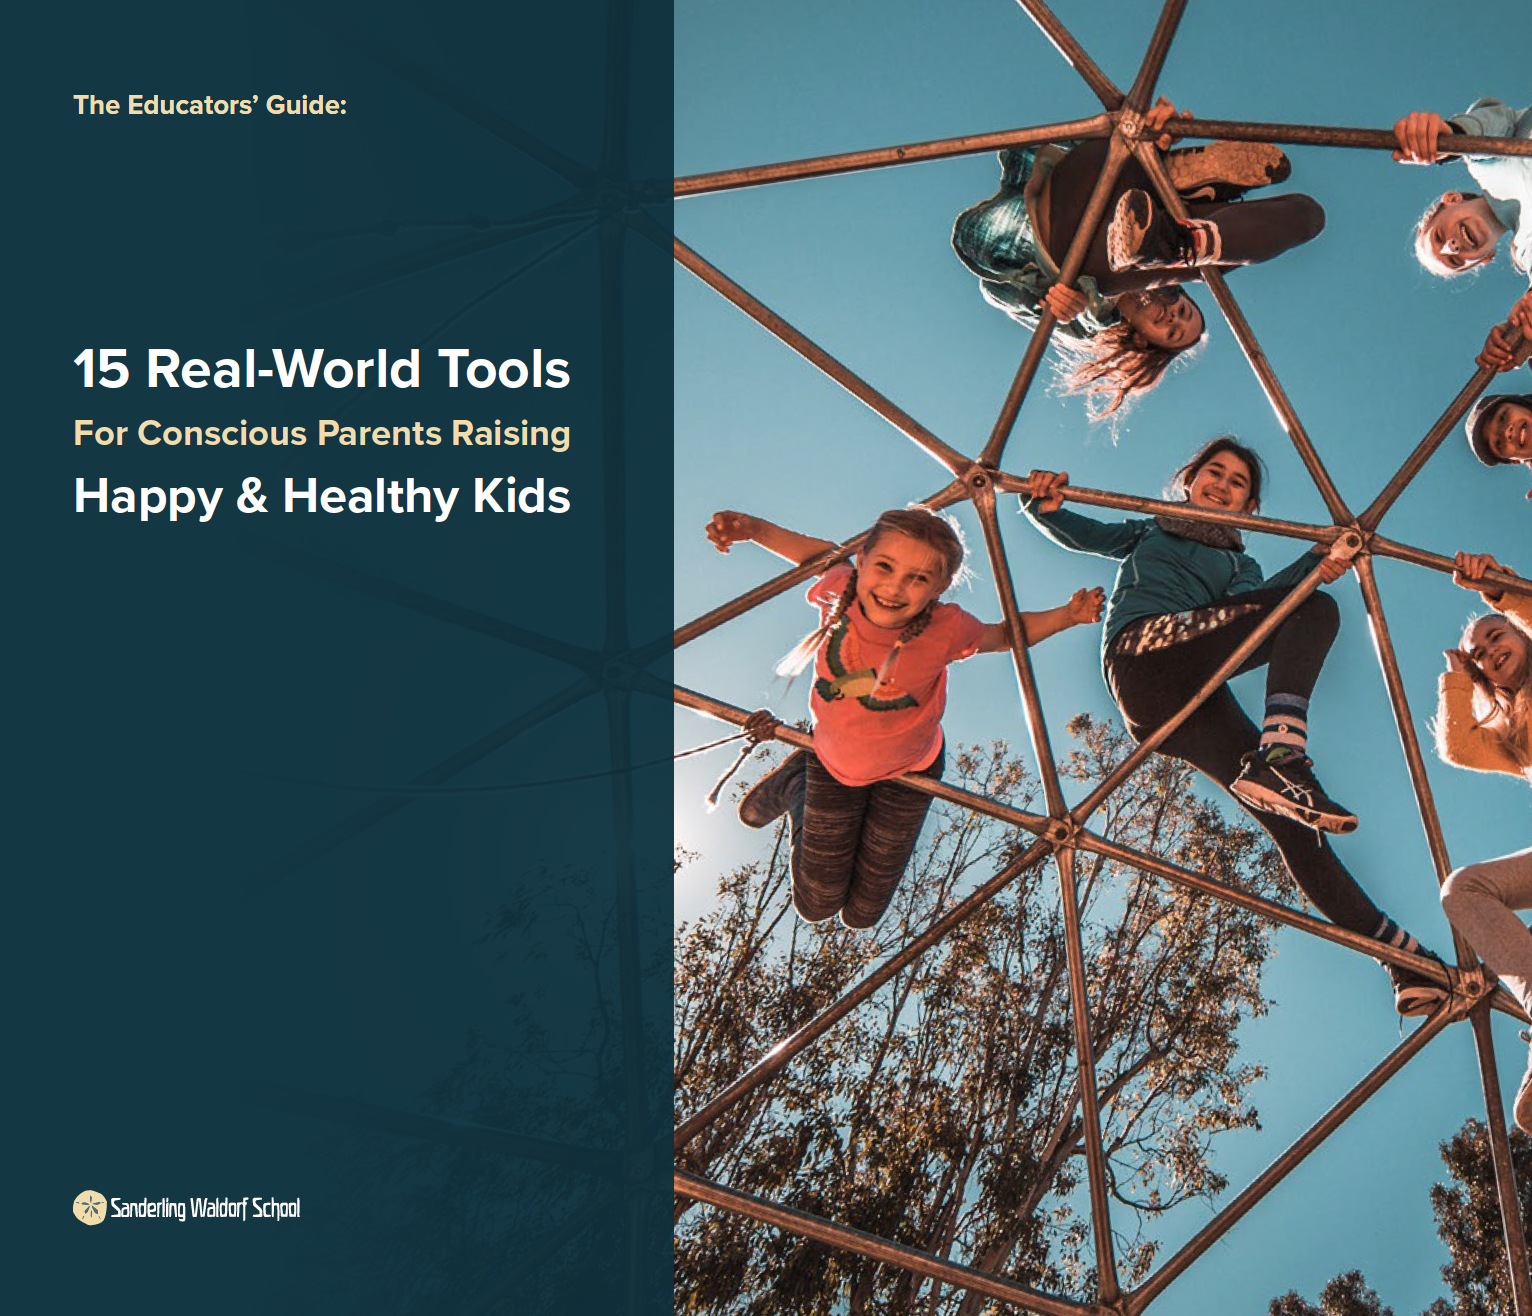 15 Real-world tools - In today's fast-paced world, it's not always easy to raise our children in ways that help them become strong leaders, embody great values, maintain healthy attitudes and bodies, and learn skill sets that will empower them for life.This guide is thoughtfully designed to inspire and offer ideas for how to raise kids that enjoy their school life, their home life and get the most of their time as kids!Please read on for some great tips on how to inspire your child's creativity at home, stay healthy in the digital age, and develop essential skills for their daily life. — The community at Sanderling